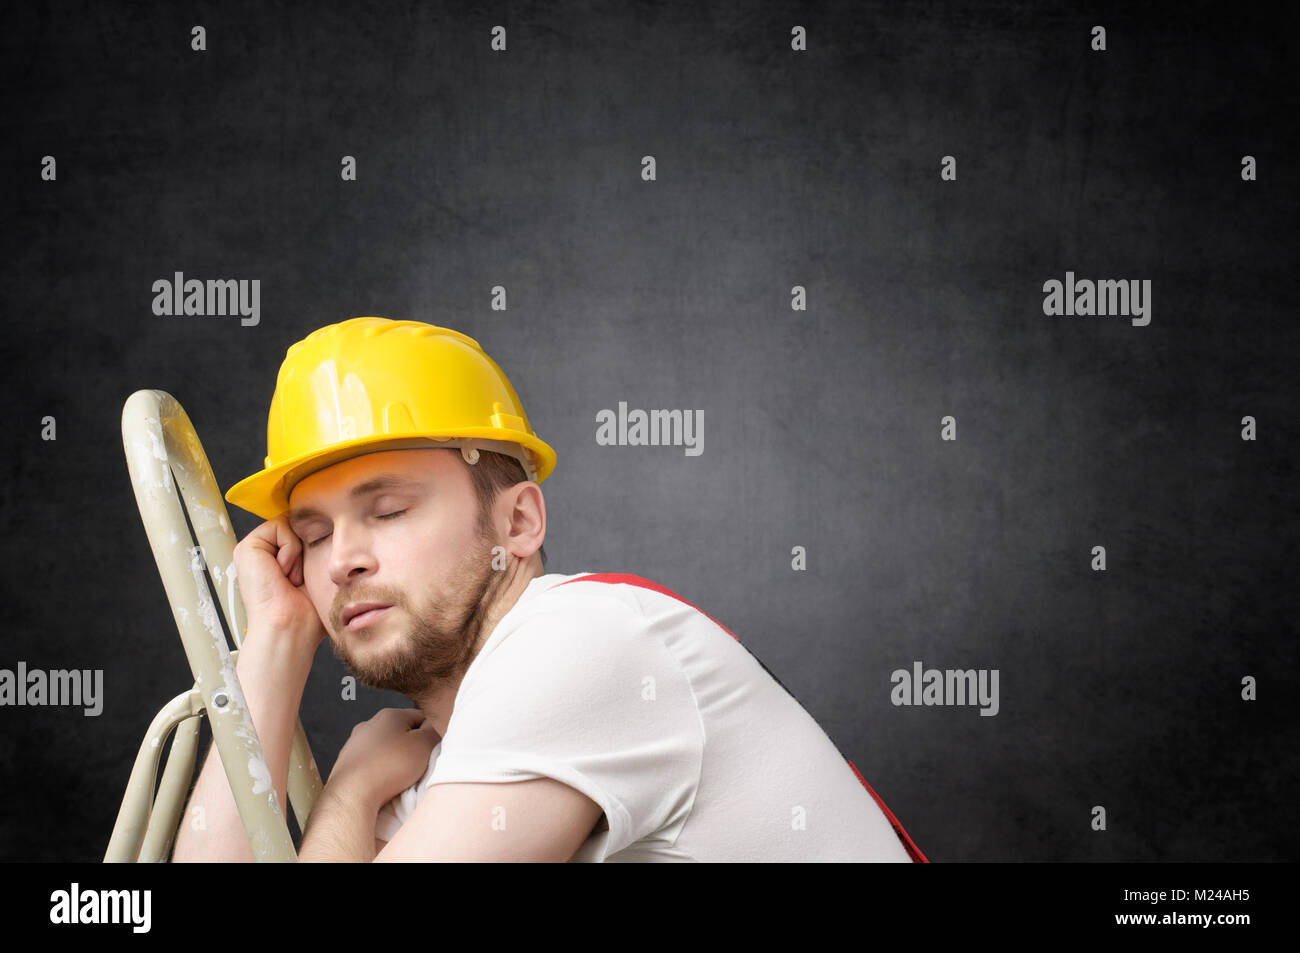 Lazy worker with ladder - Stock Image